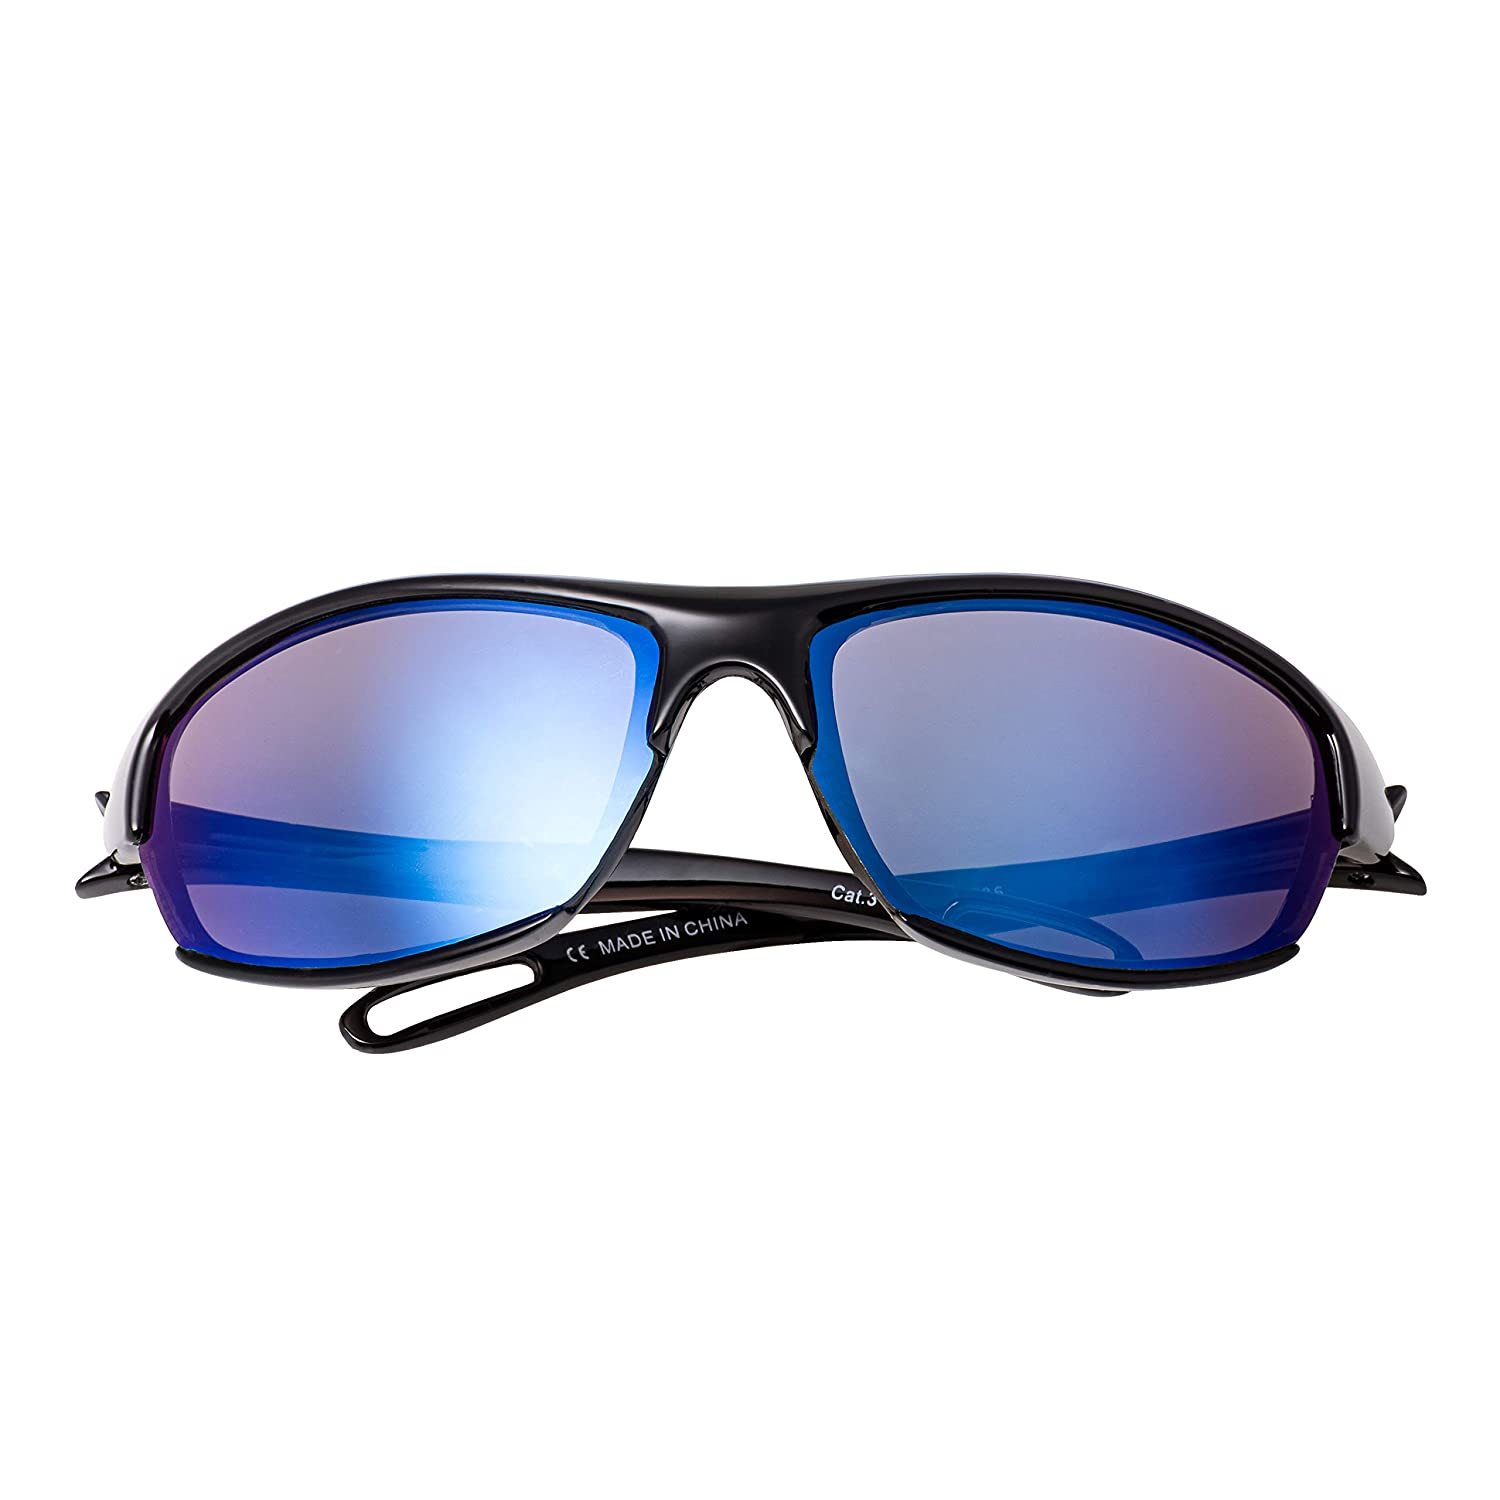 b96e66bbcbcf Childrens Kids Black with Blue Lenses Wraparound high quality Sunglasses  UV400 UVA UVB Protection Shades: Amazon.co.uk: Clothing